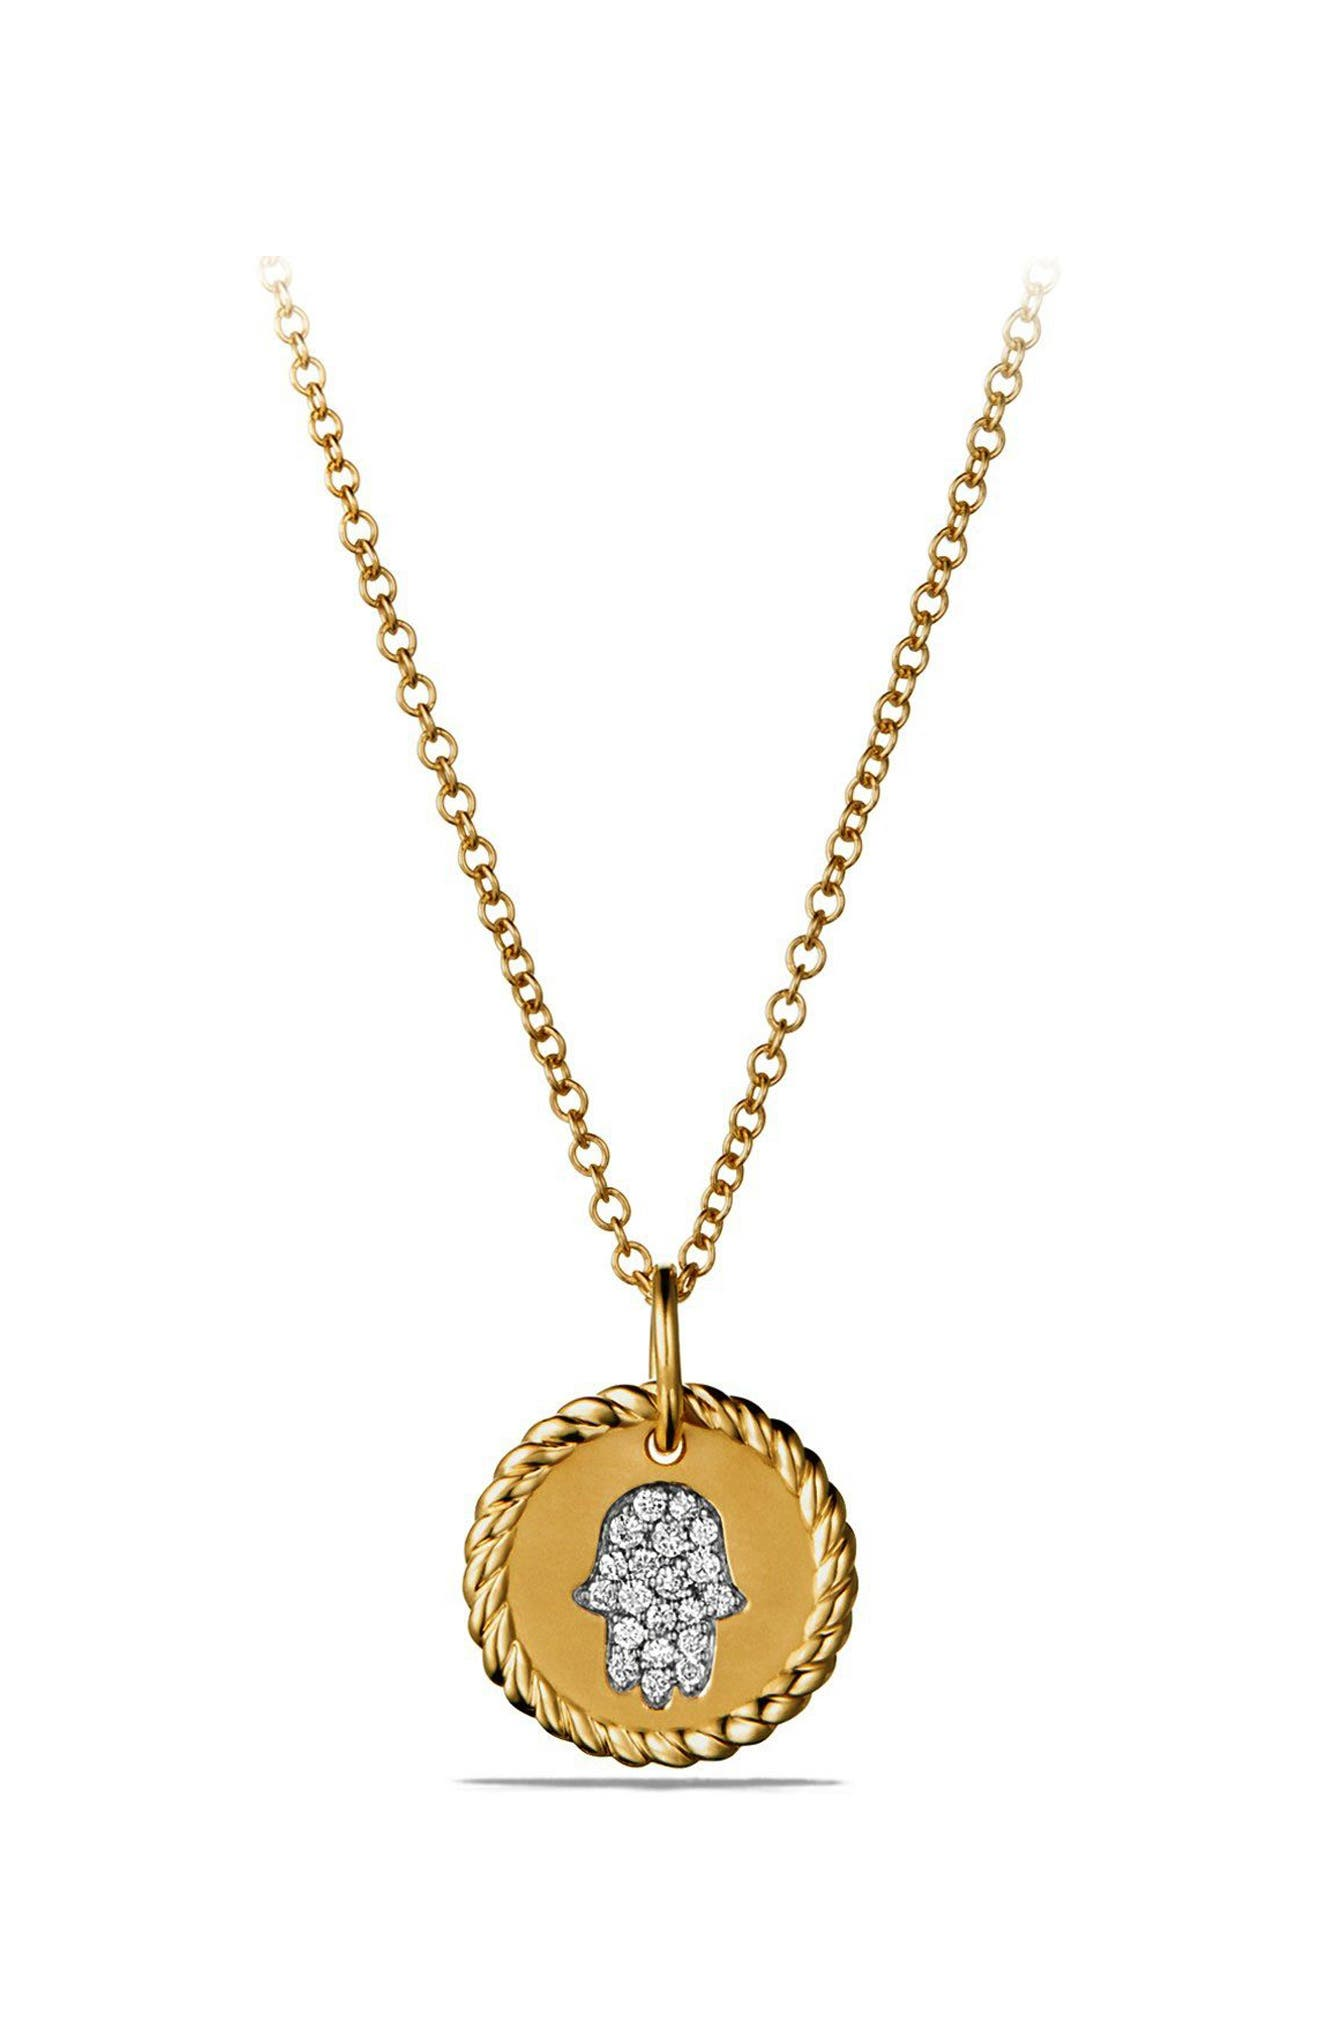 'Cable Collectibles' Pavé Charm with Diamonds in Gold,                             Main thumbnail 1, color,                             GOLD